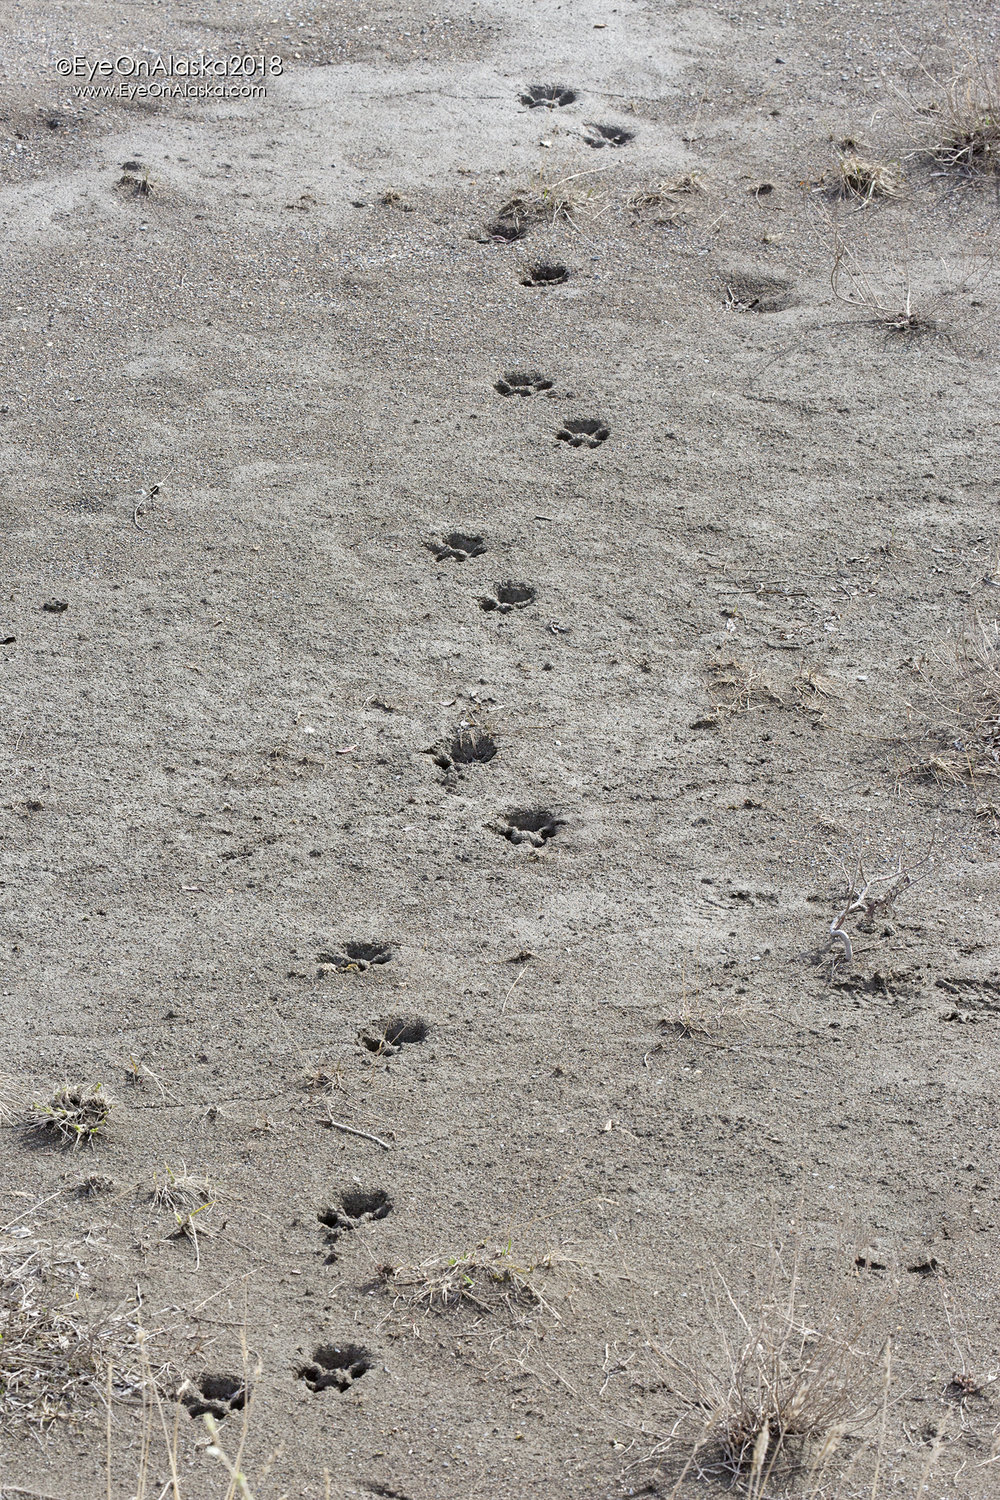 Pretty fresh set of wolf tracks on the Toklat River mud.  Sadly, we didn't get to see any wolves this trip.